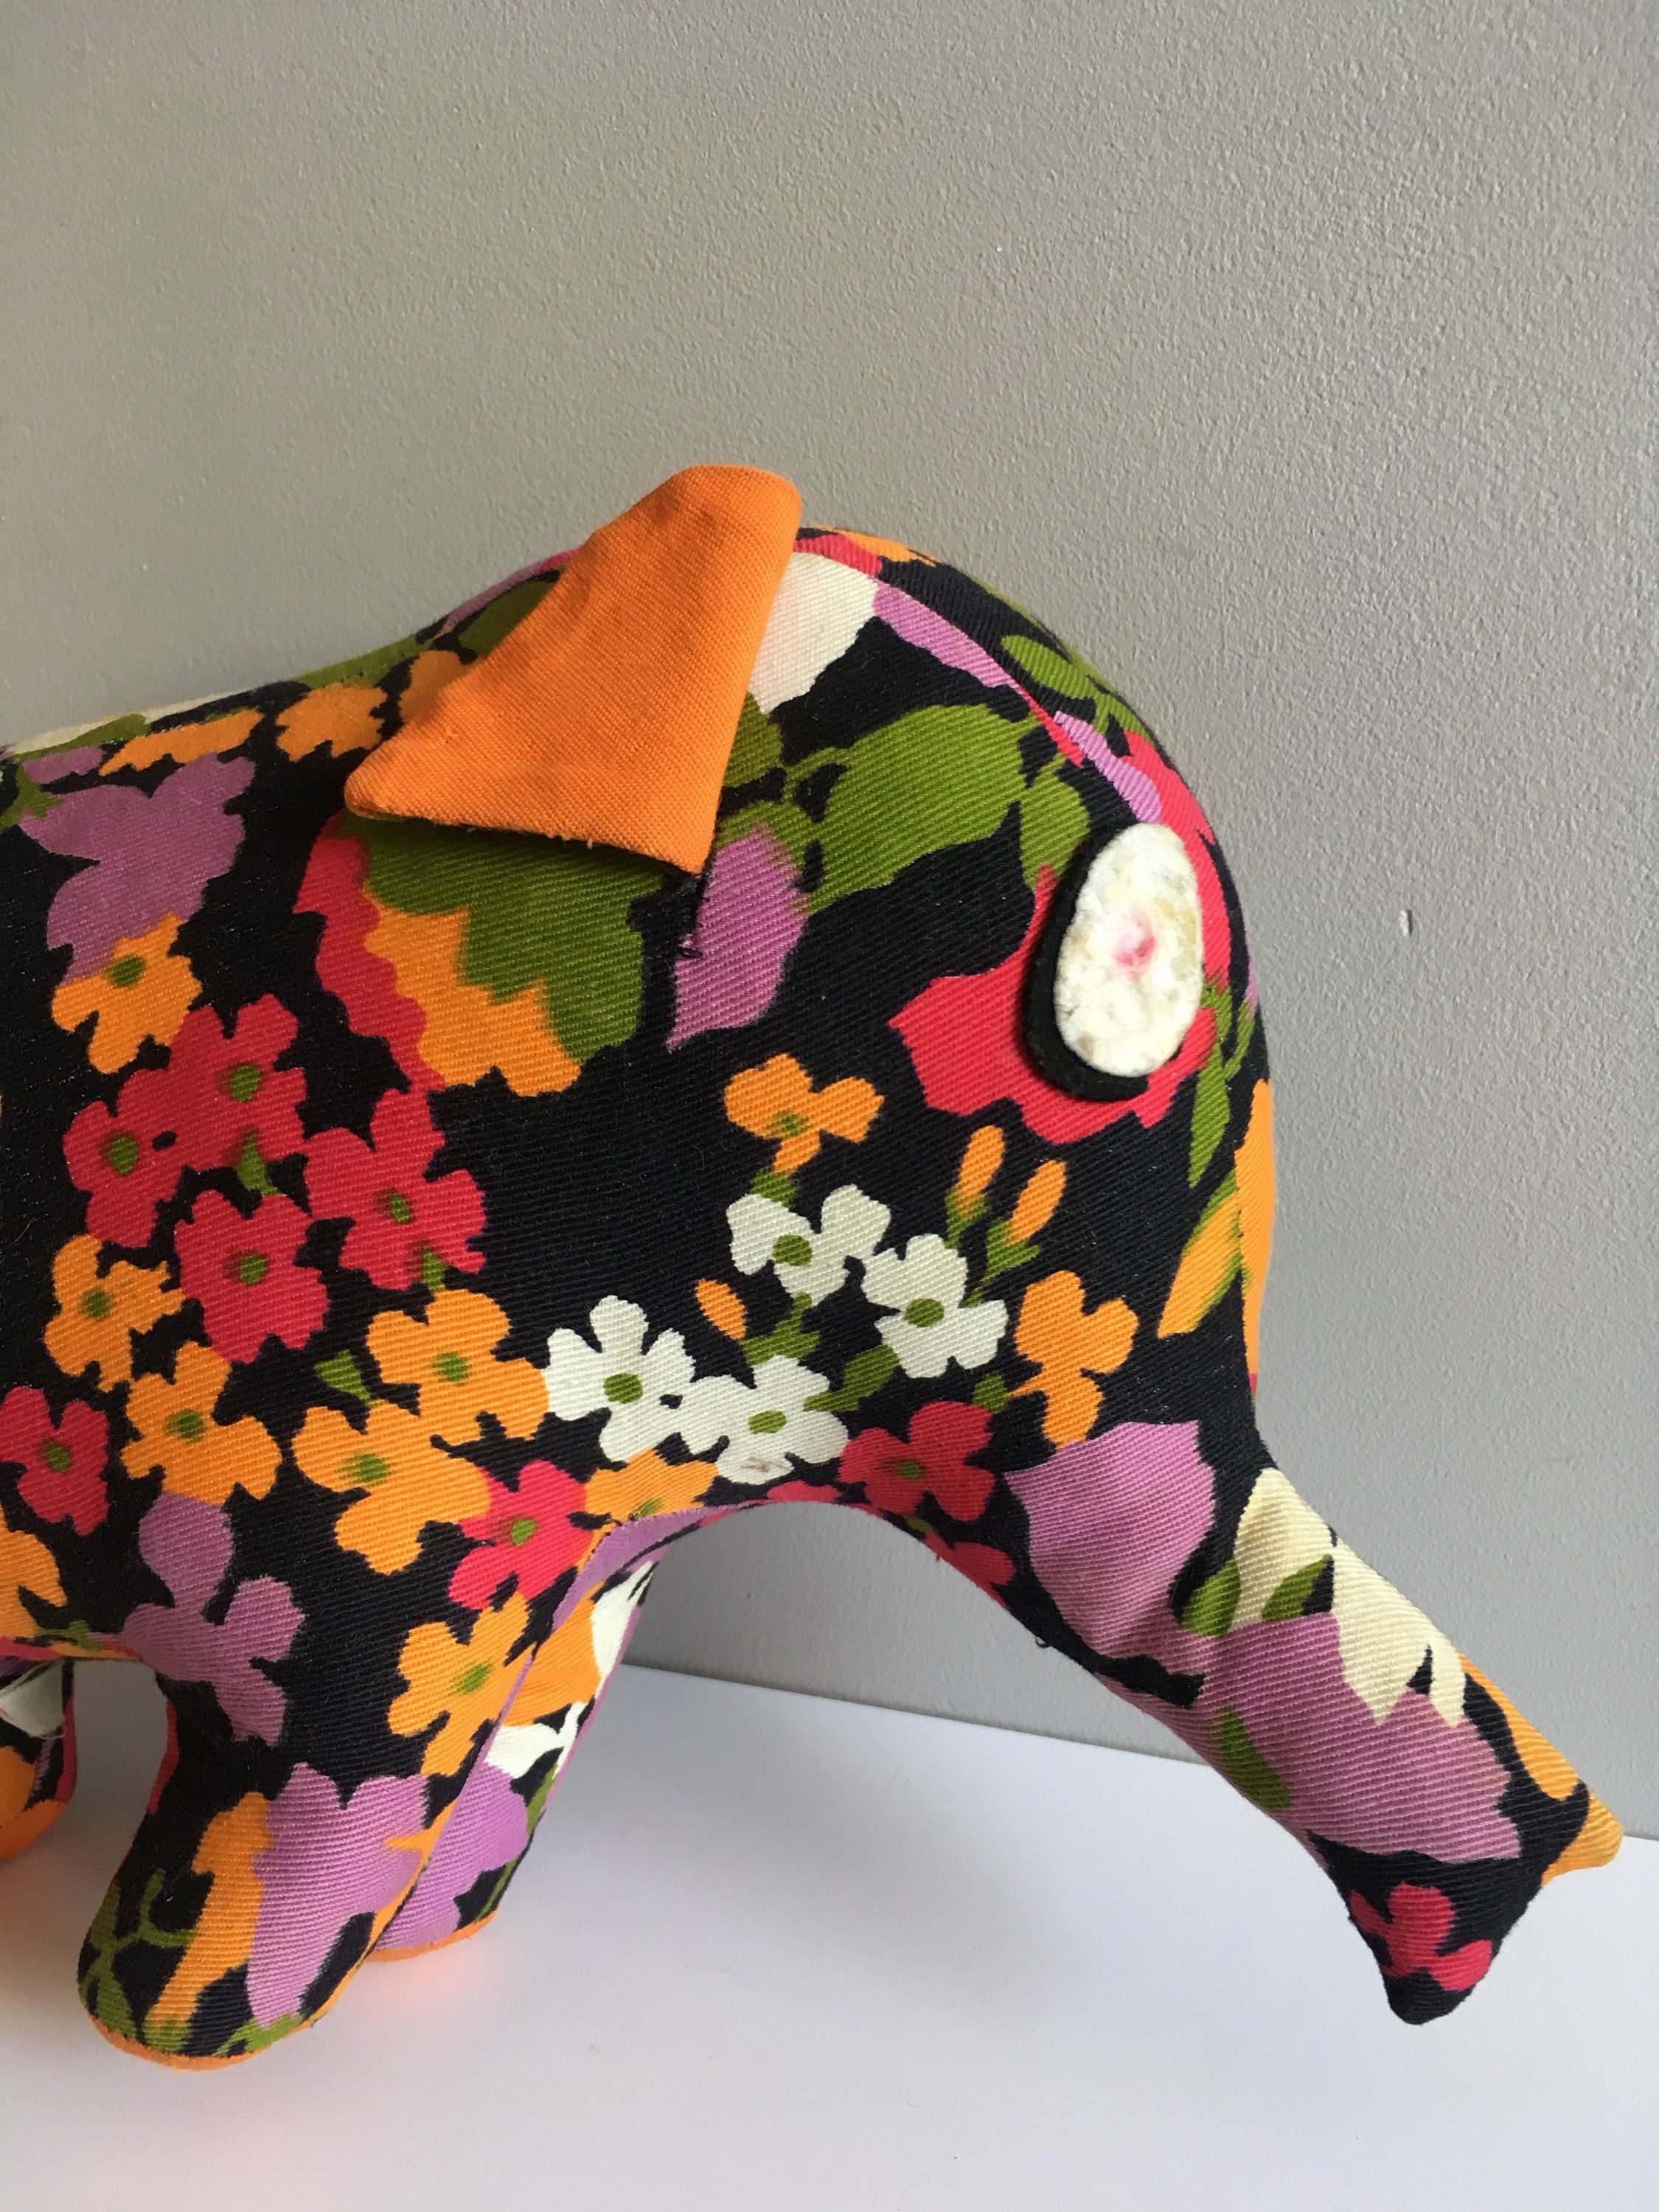 Vintage teddy Elephant, Chad Valley, Made in England flower power print.